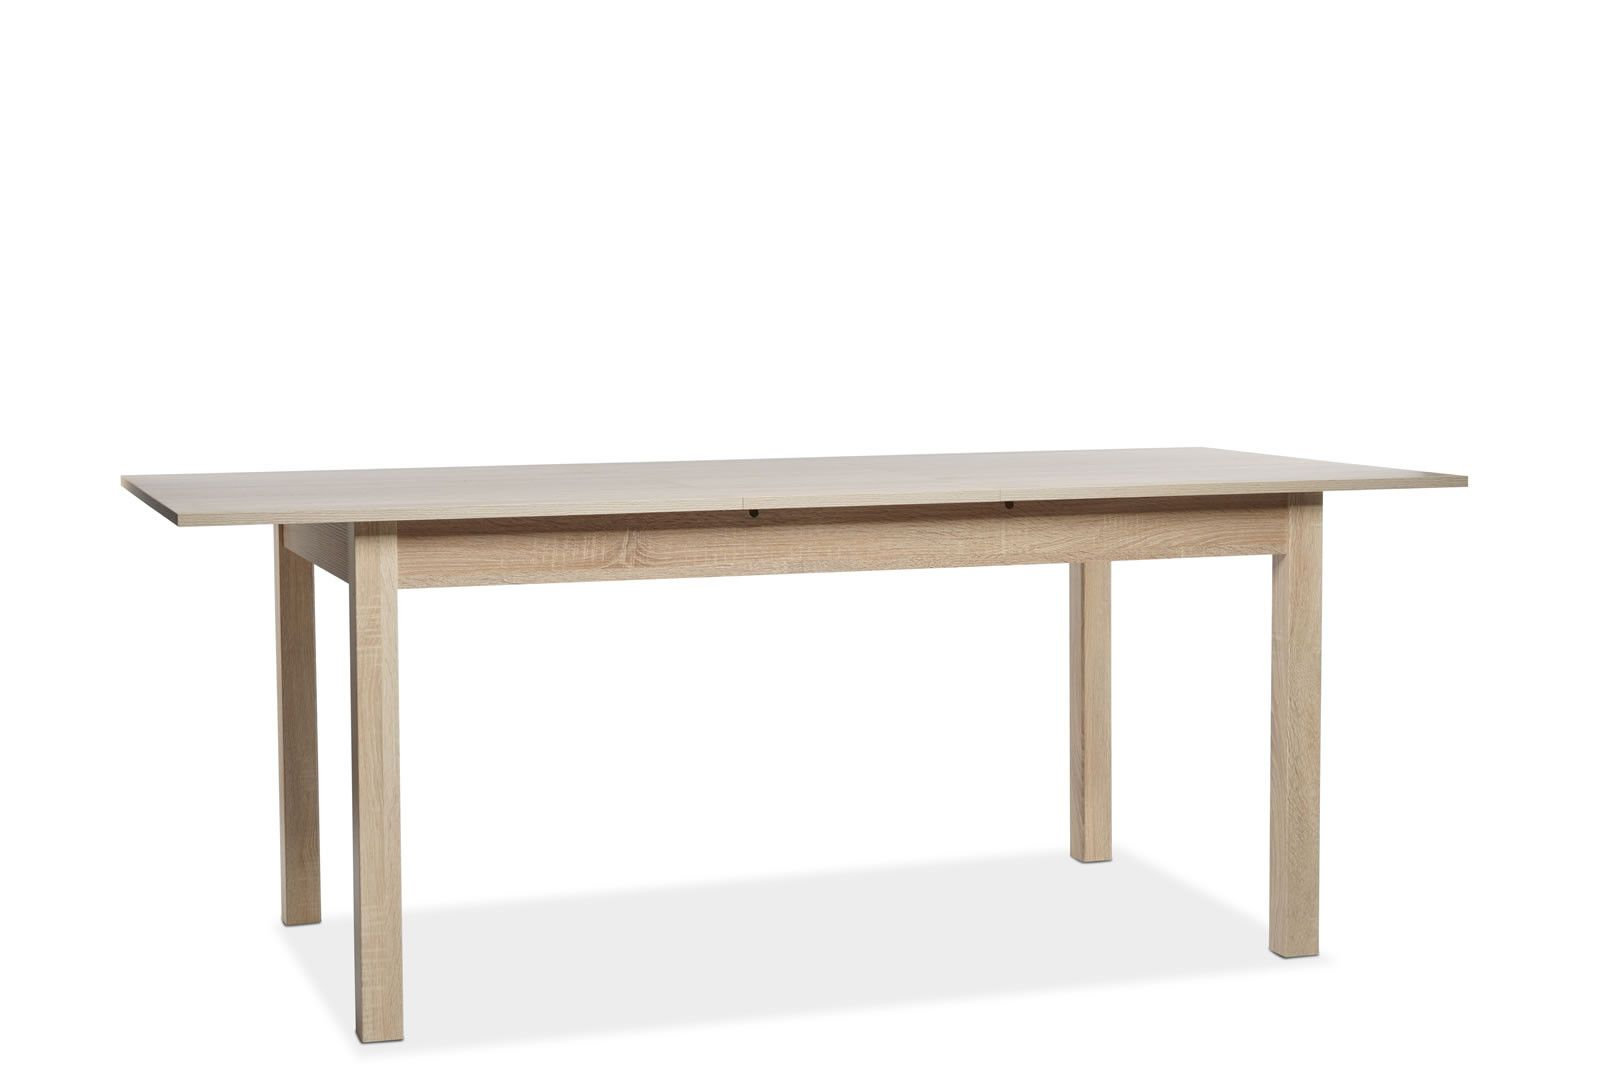 Table manger avec allonge 160 200 cm jiminy ch ne clair for Table a manger 160 cm avec rallonge